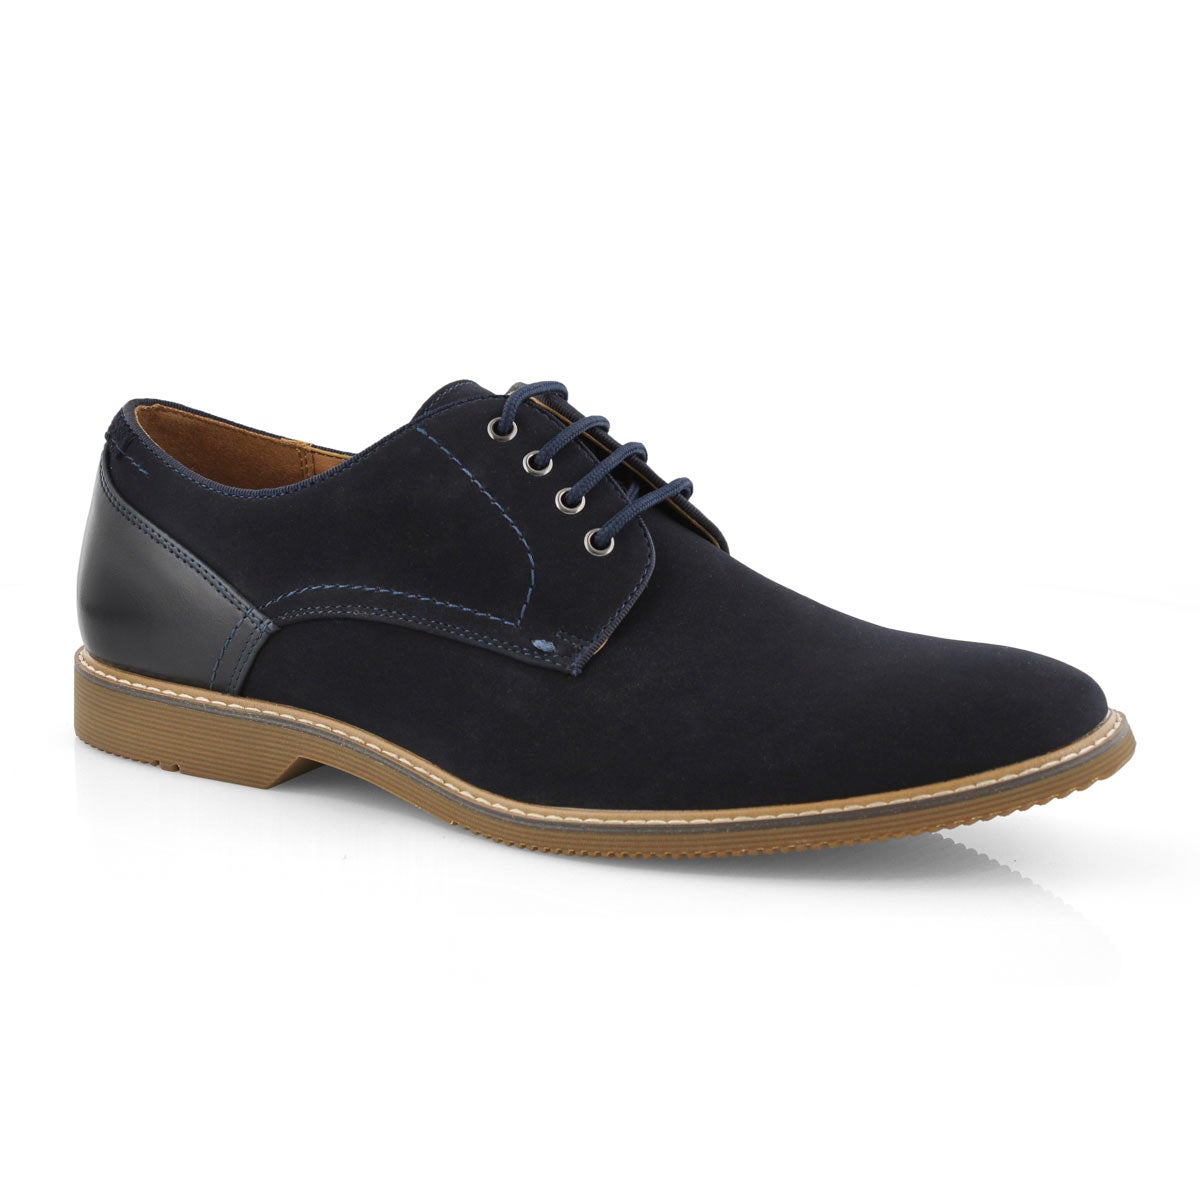 Men's NEWSTEAD navy lace up dress oxfords